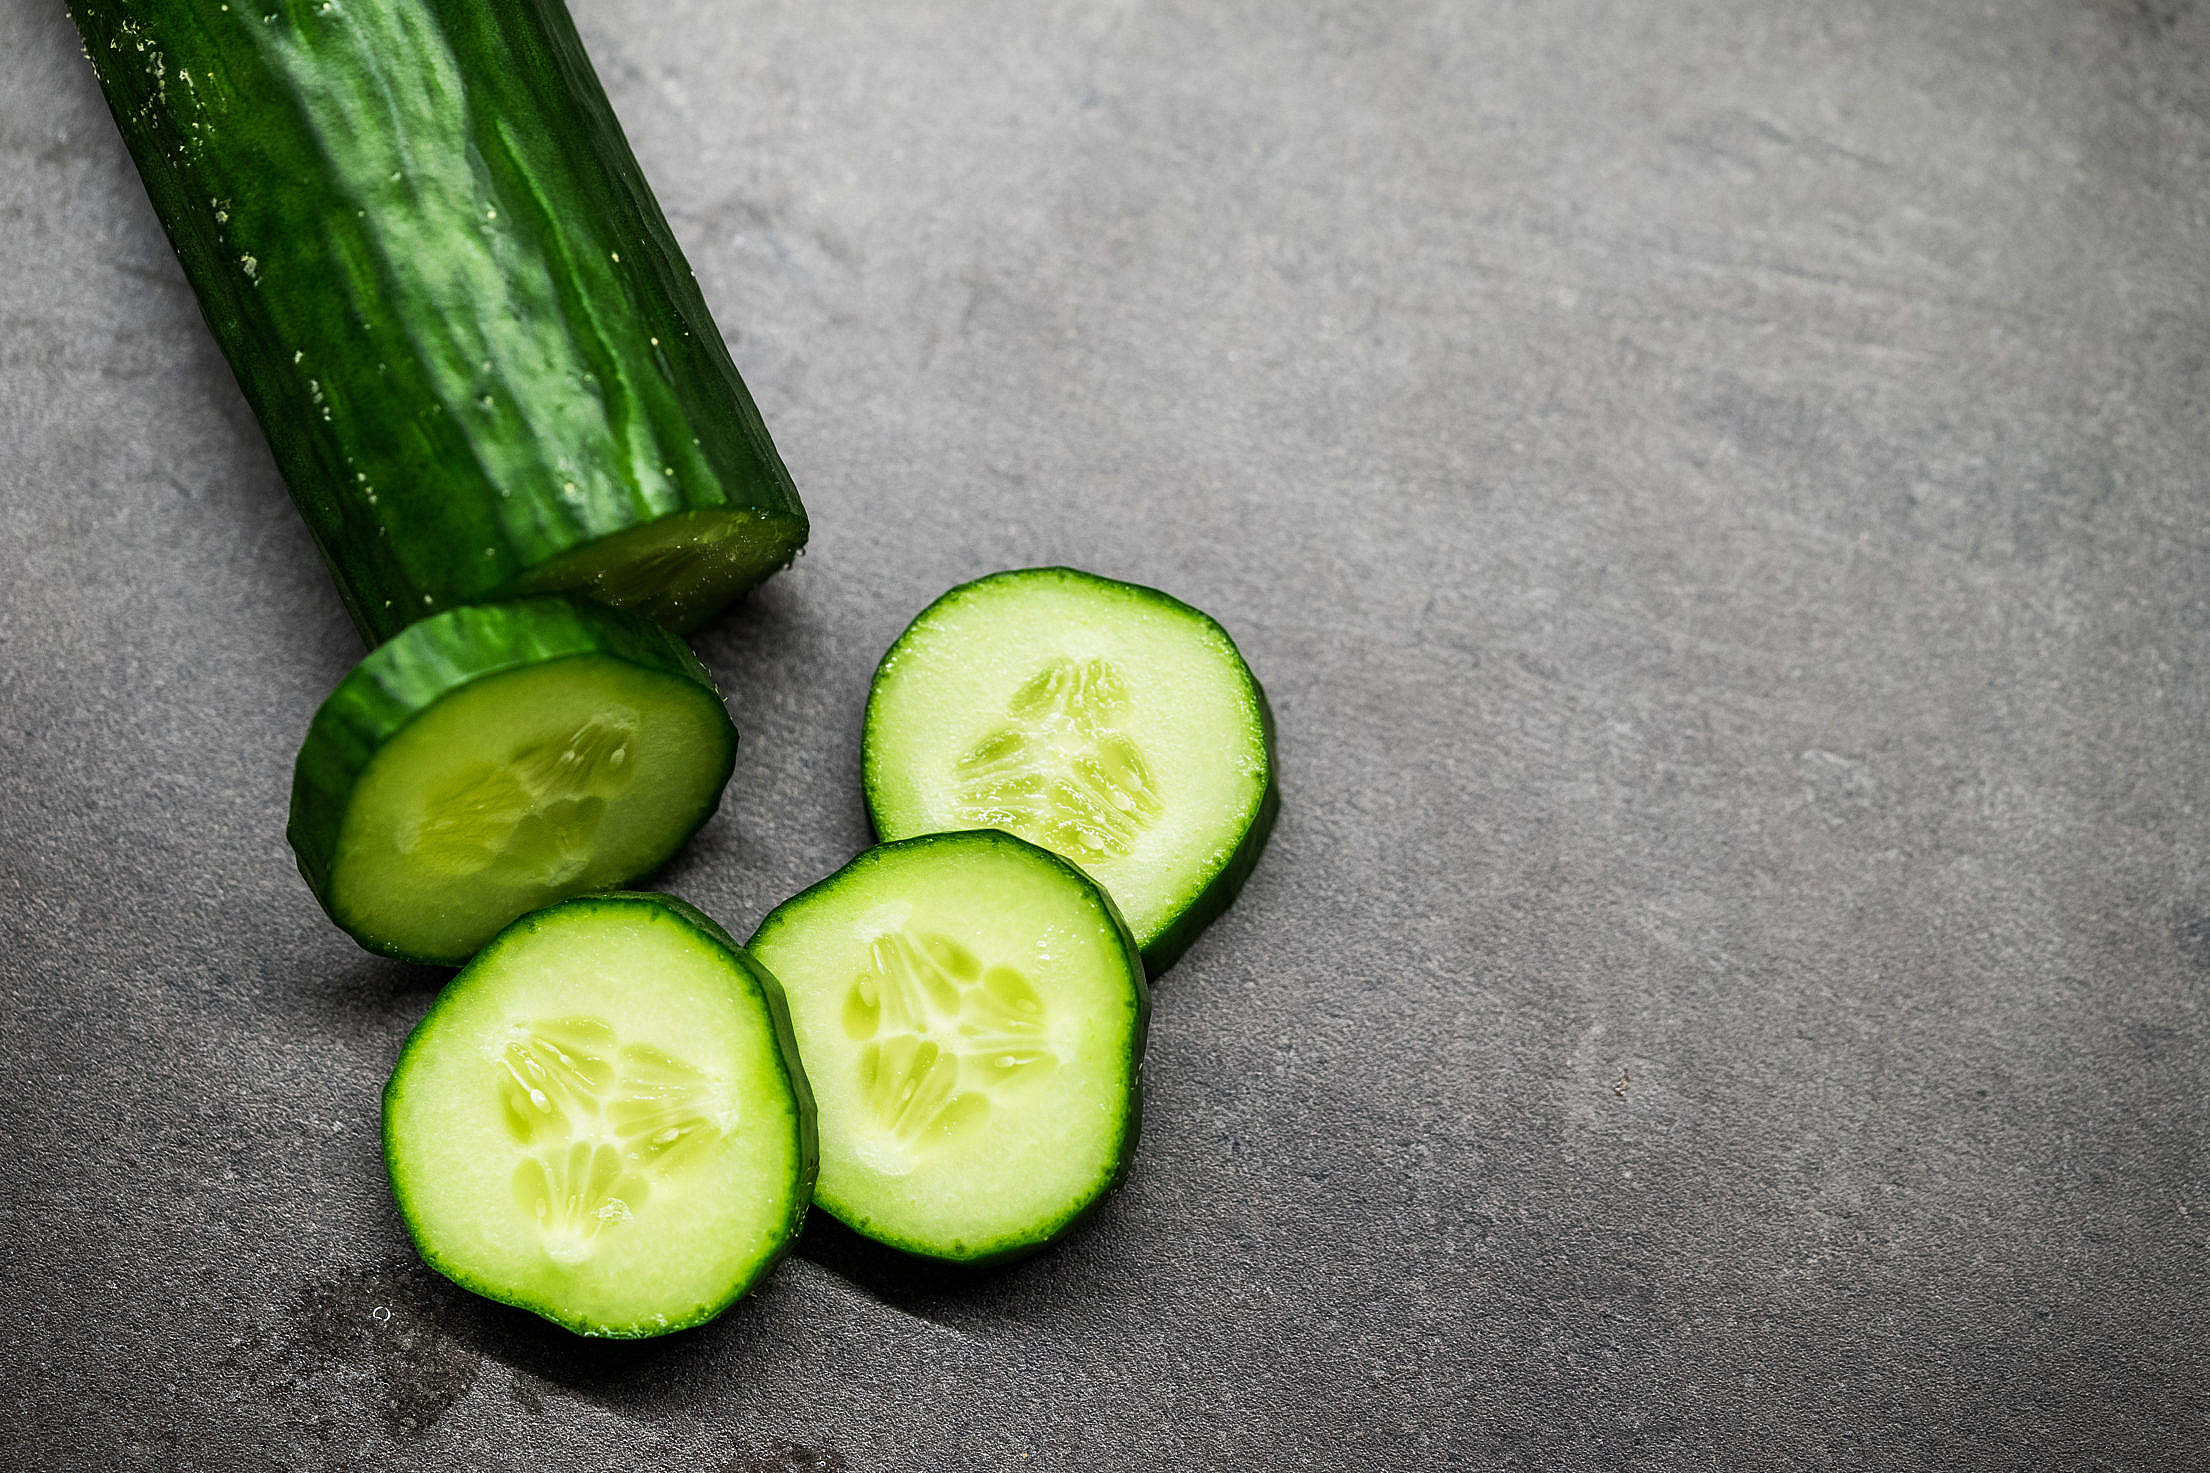 Download Slices of Cucumber Free Stock Photo